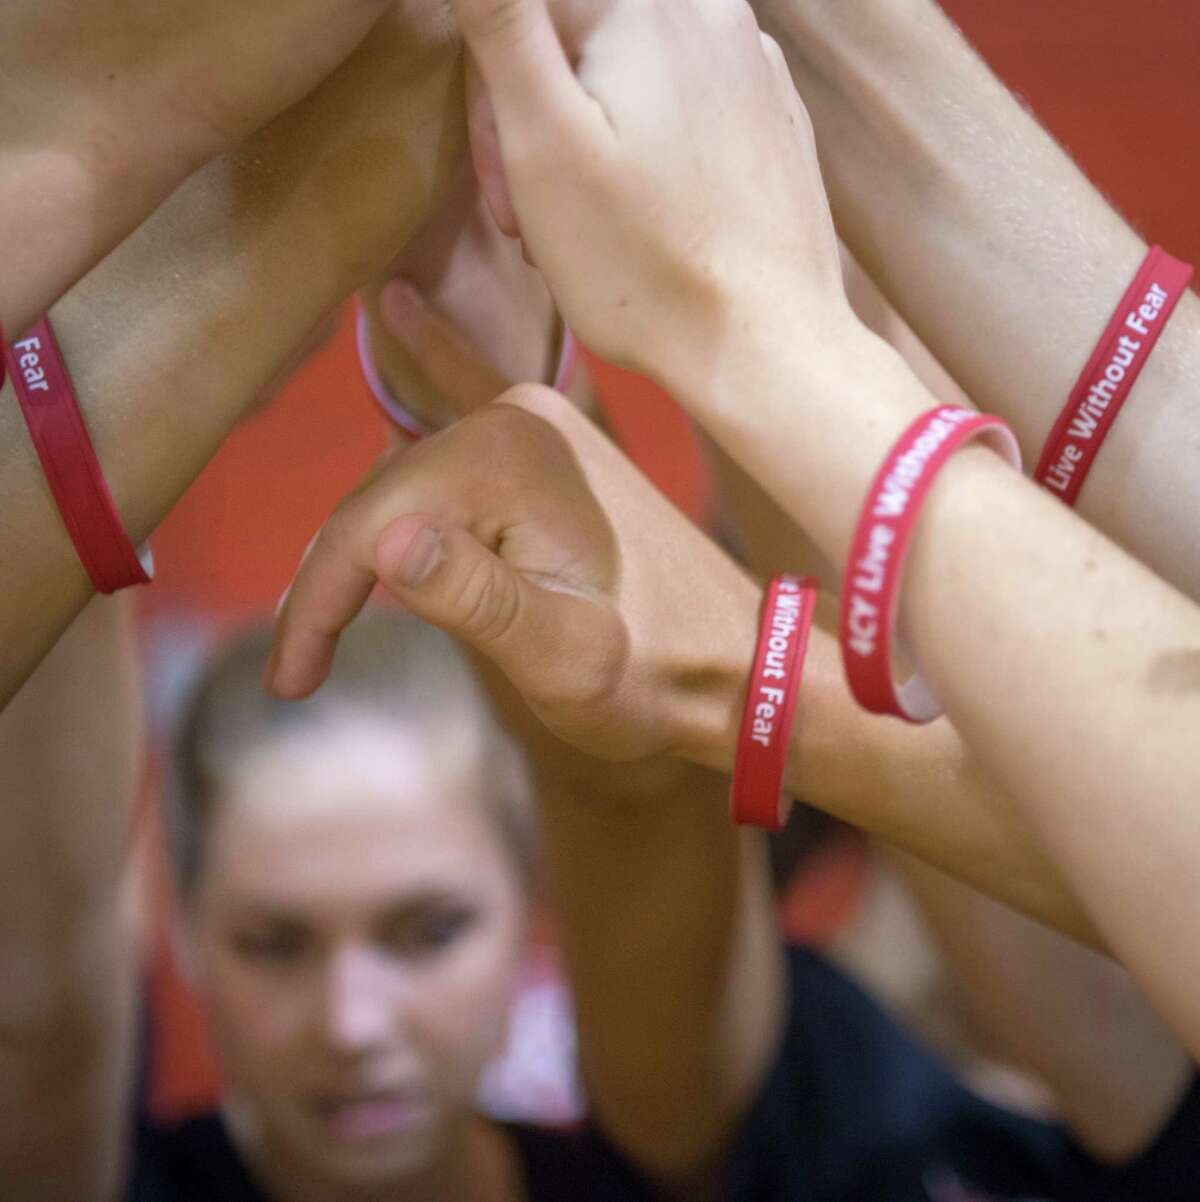 Members of the Memorial High School volleyball team wear bracelets reading